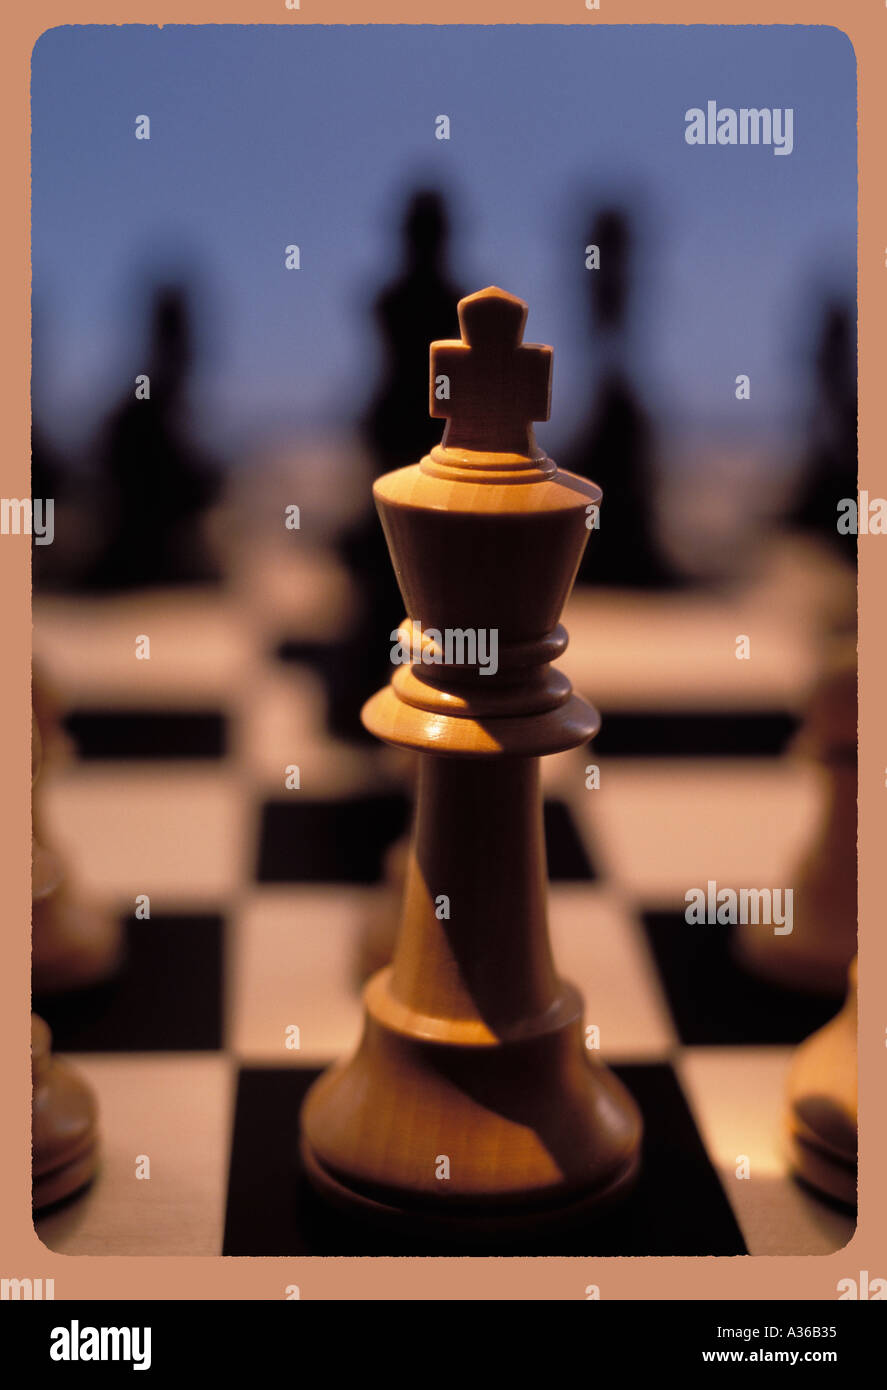 White king on chessboard - Stock Image